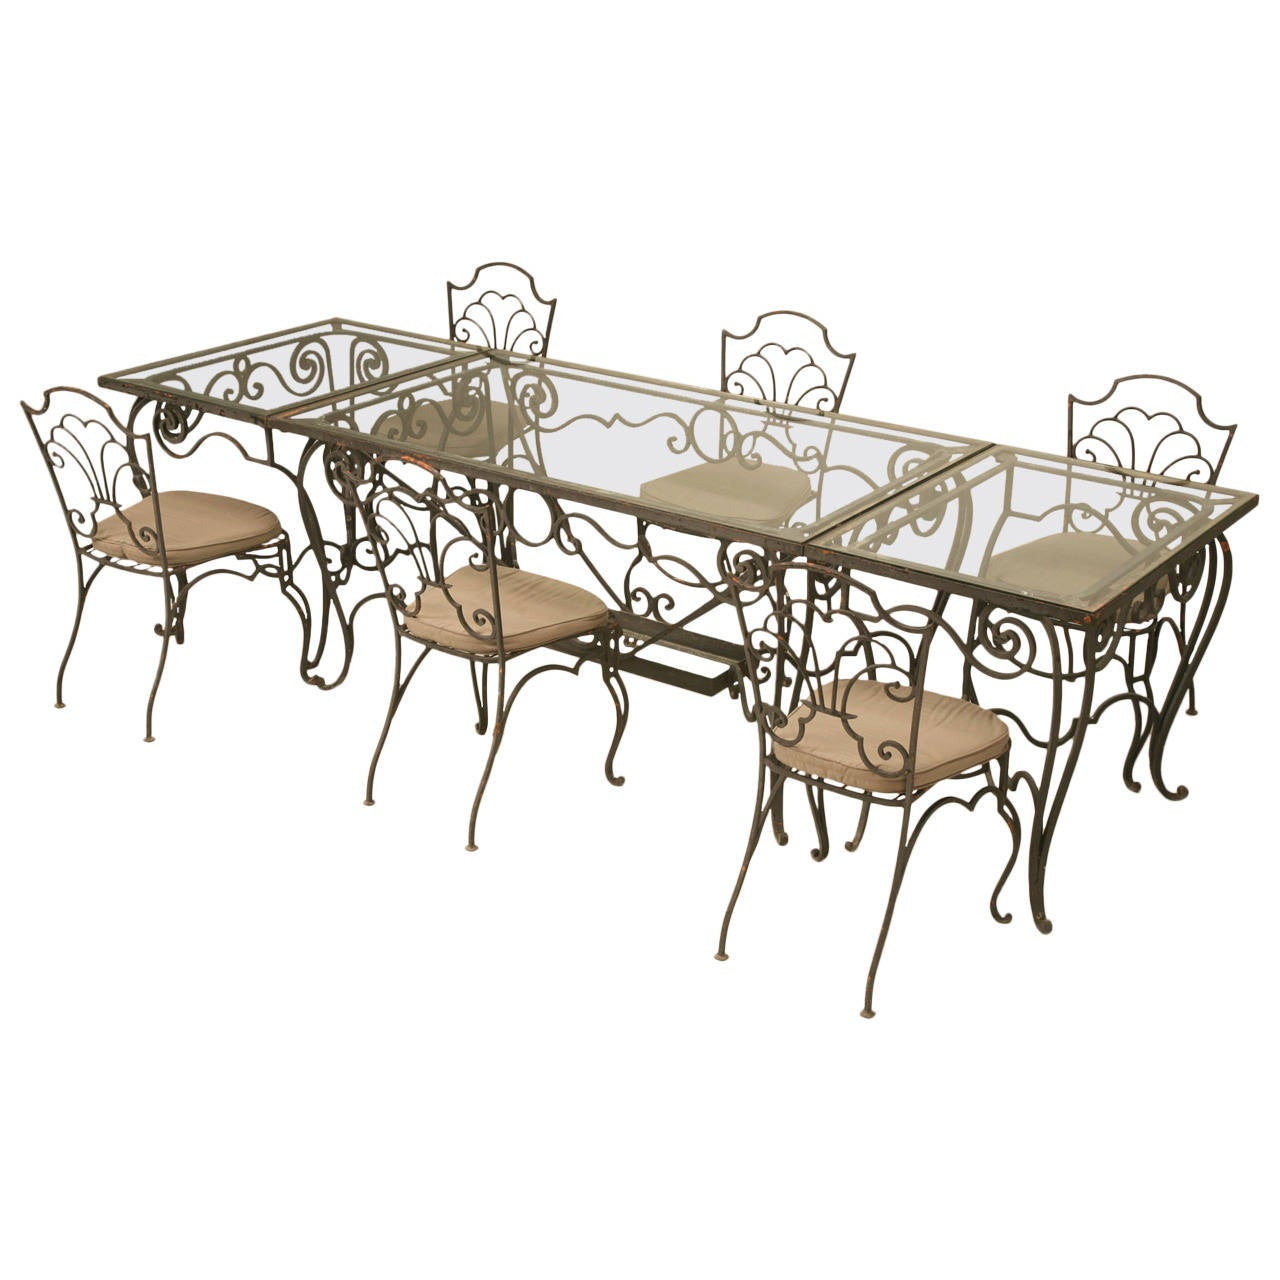 Vintage French Garden Table and Chair Set